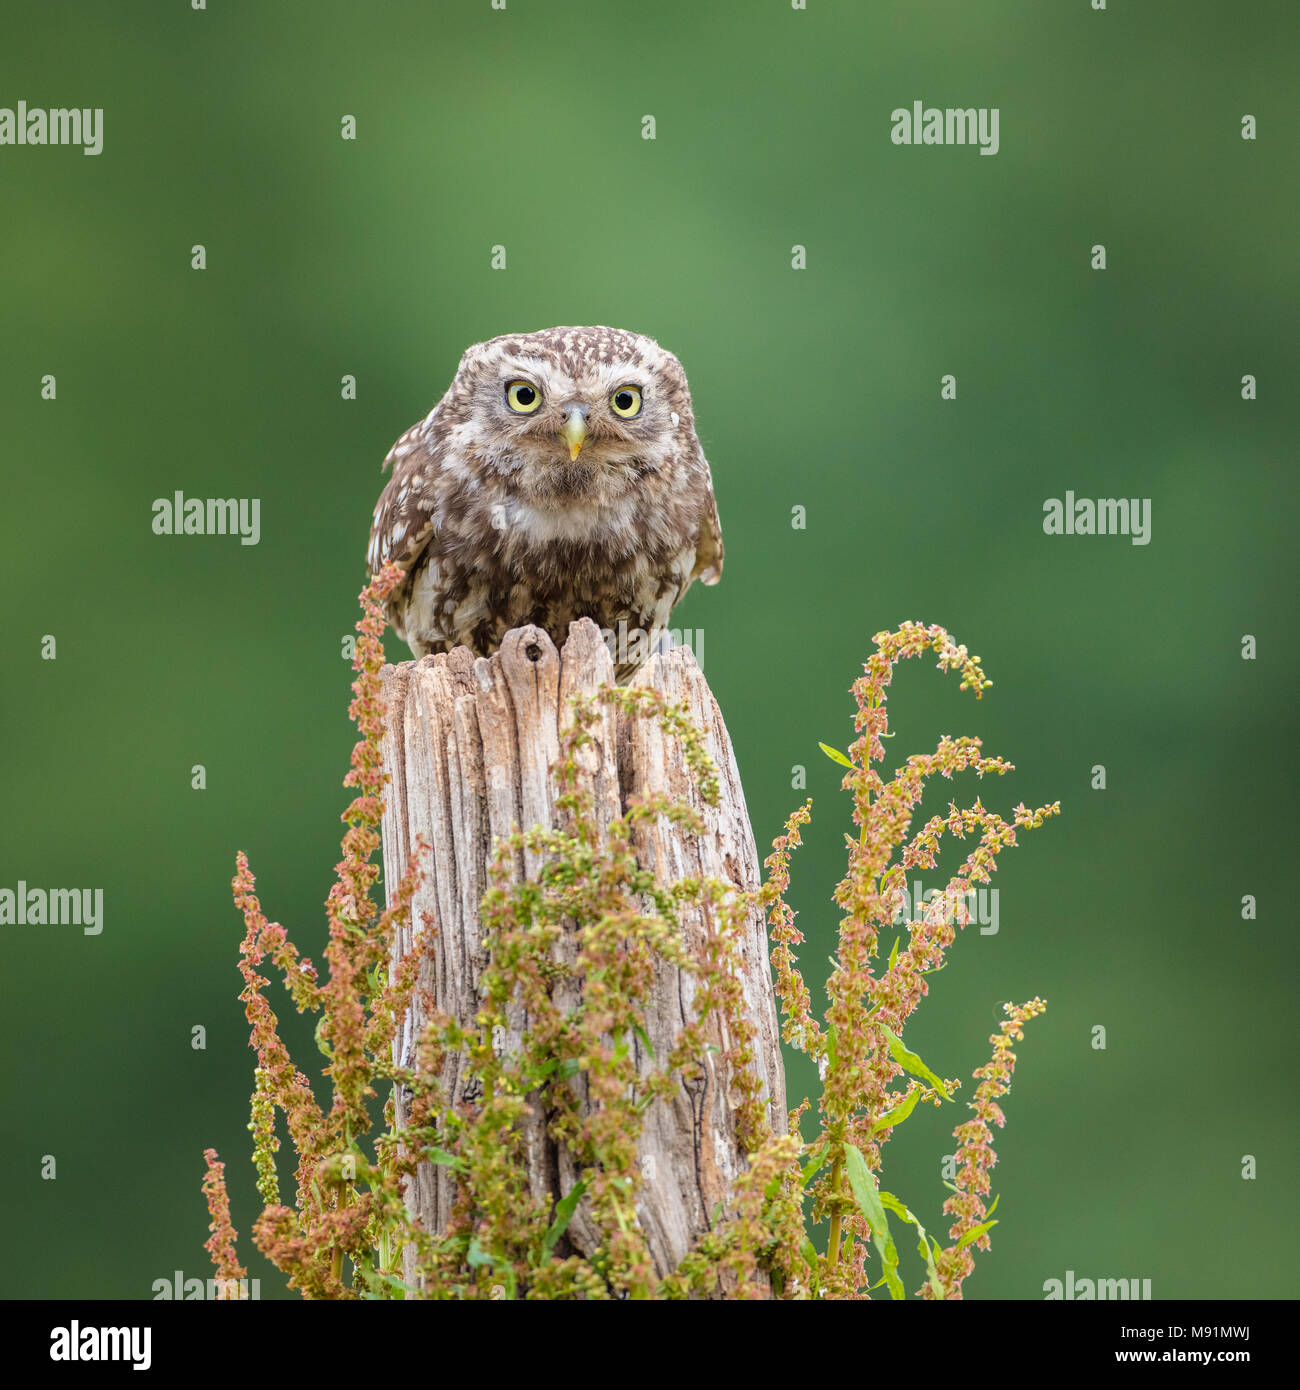 Perched little owl looking straight at the camera - Stock Image